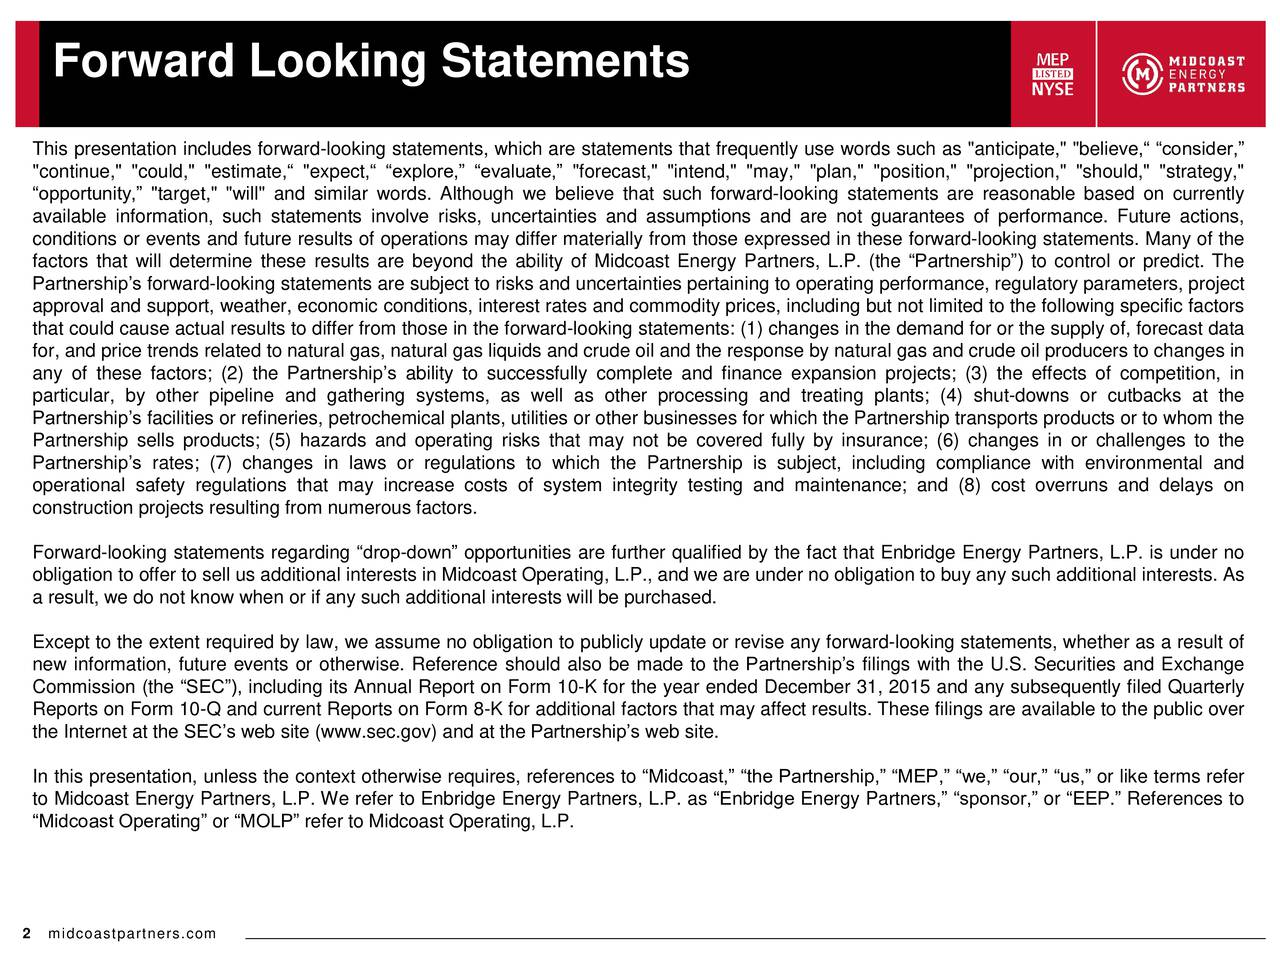 """This presentation includes forward-looking statements, which are statements that frequently use words such as """"anticipate,"""" """"believe, consider, """"continue,"""" """"could,"""" """"estimate, """"expect, explore, evaluate, """"forecast,"""" """"intend,"""" """"may,"""" """"plan,"""" """"position,"""" """"projection,"""" """"should,"""" """"strategy,"""" opportunity, """"target,"""" """"will"""" and similar words. Although we believe that such forward-looking statements are reasonable based on currently available information, such statements involve risks, uncertainties and assumptions and are not guarantees of performance. Future actions, conditions or events and future results of operations may differ materially from those expressed in these forward-looking statements. Many of the factors that will determine these results are beyond the ability of Midcoast Energy Partners, L.P. (the Partnership) to control or predict. The Partnerships forward-looking statements are subject to risks and uncertainties pertaining to operating performance, regulatory parameters, project approval and support, weather, economic conditions, interest rates and commodity prices, including but not limited to the following specific factors that could cause actual results to differ from those in the forward-looking statements: (1) changes in the demand for or the supply of, forecast data for, and price trends related to natural gas, natural gas liquids and crude oil and the response by natural gas and crude oil producers to changes in any of these factors; (2) the Partnerships ability to successfully complete and finance expansion projects; (3) the effects of competition, in particular, by other pipeline and gathering systems, as well as other processing and treating plants; (4) shut-downs or cutbacks at the Partnerships facilities or refineries, petrochemical plants, utilities or other businesses for which the Partnership transports products or to whom the Partnership sells products; (5) hazards and operating risks that may not be covered fully by insurance; (6) changes"""